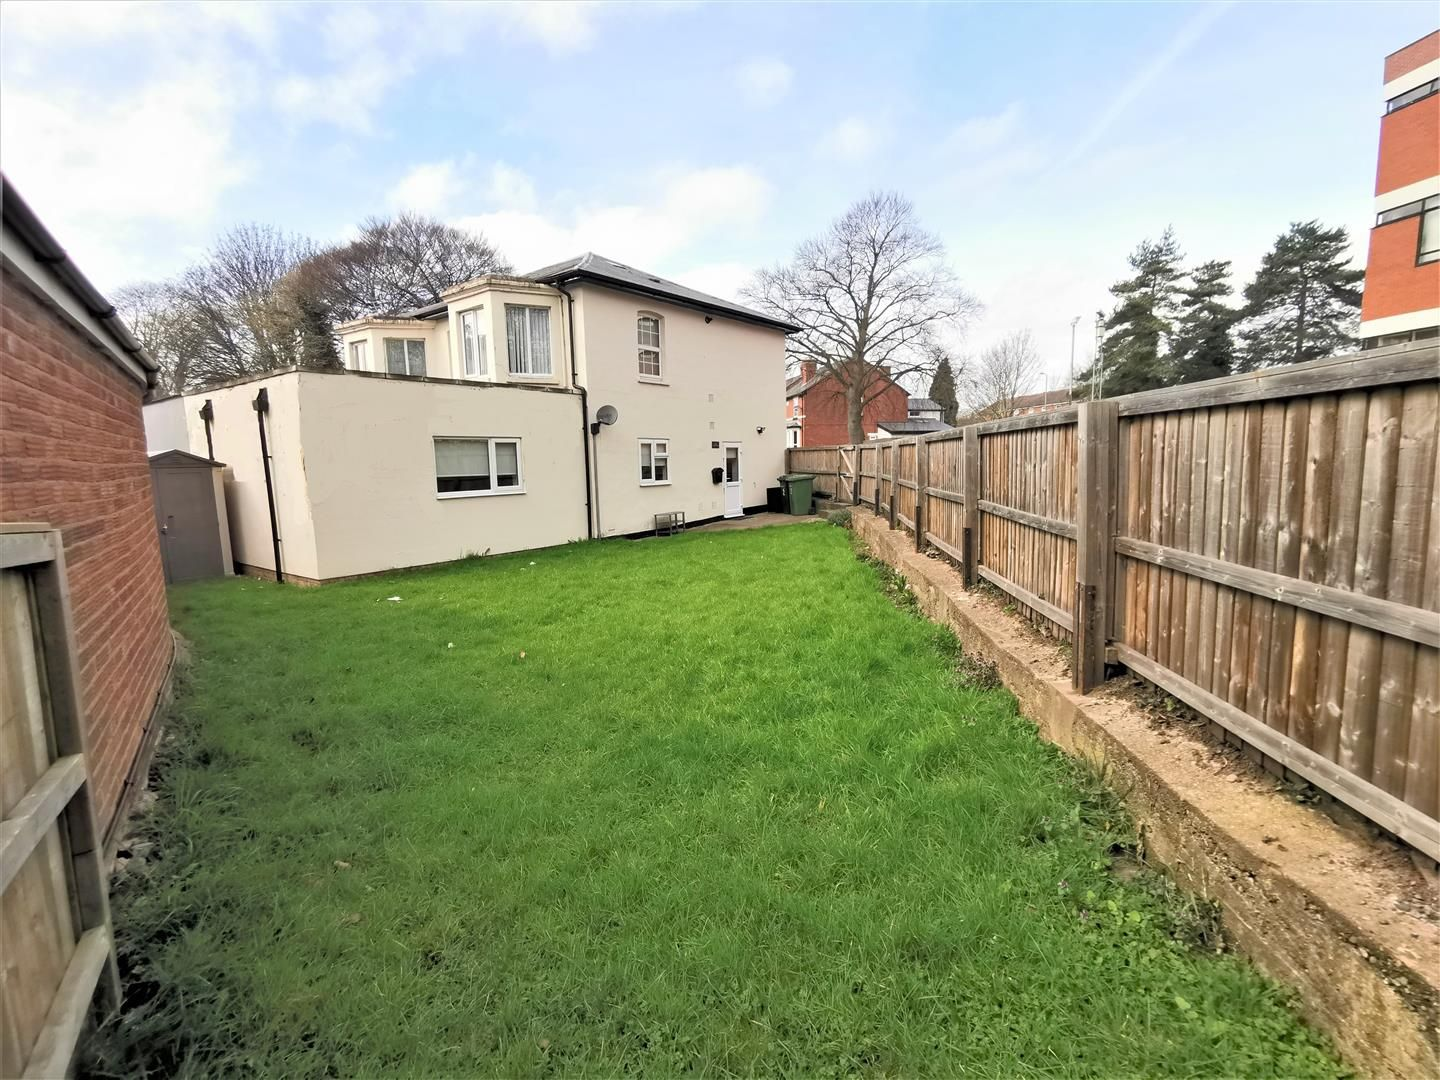 1 bed apartment for sale, HR4